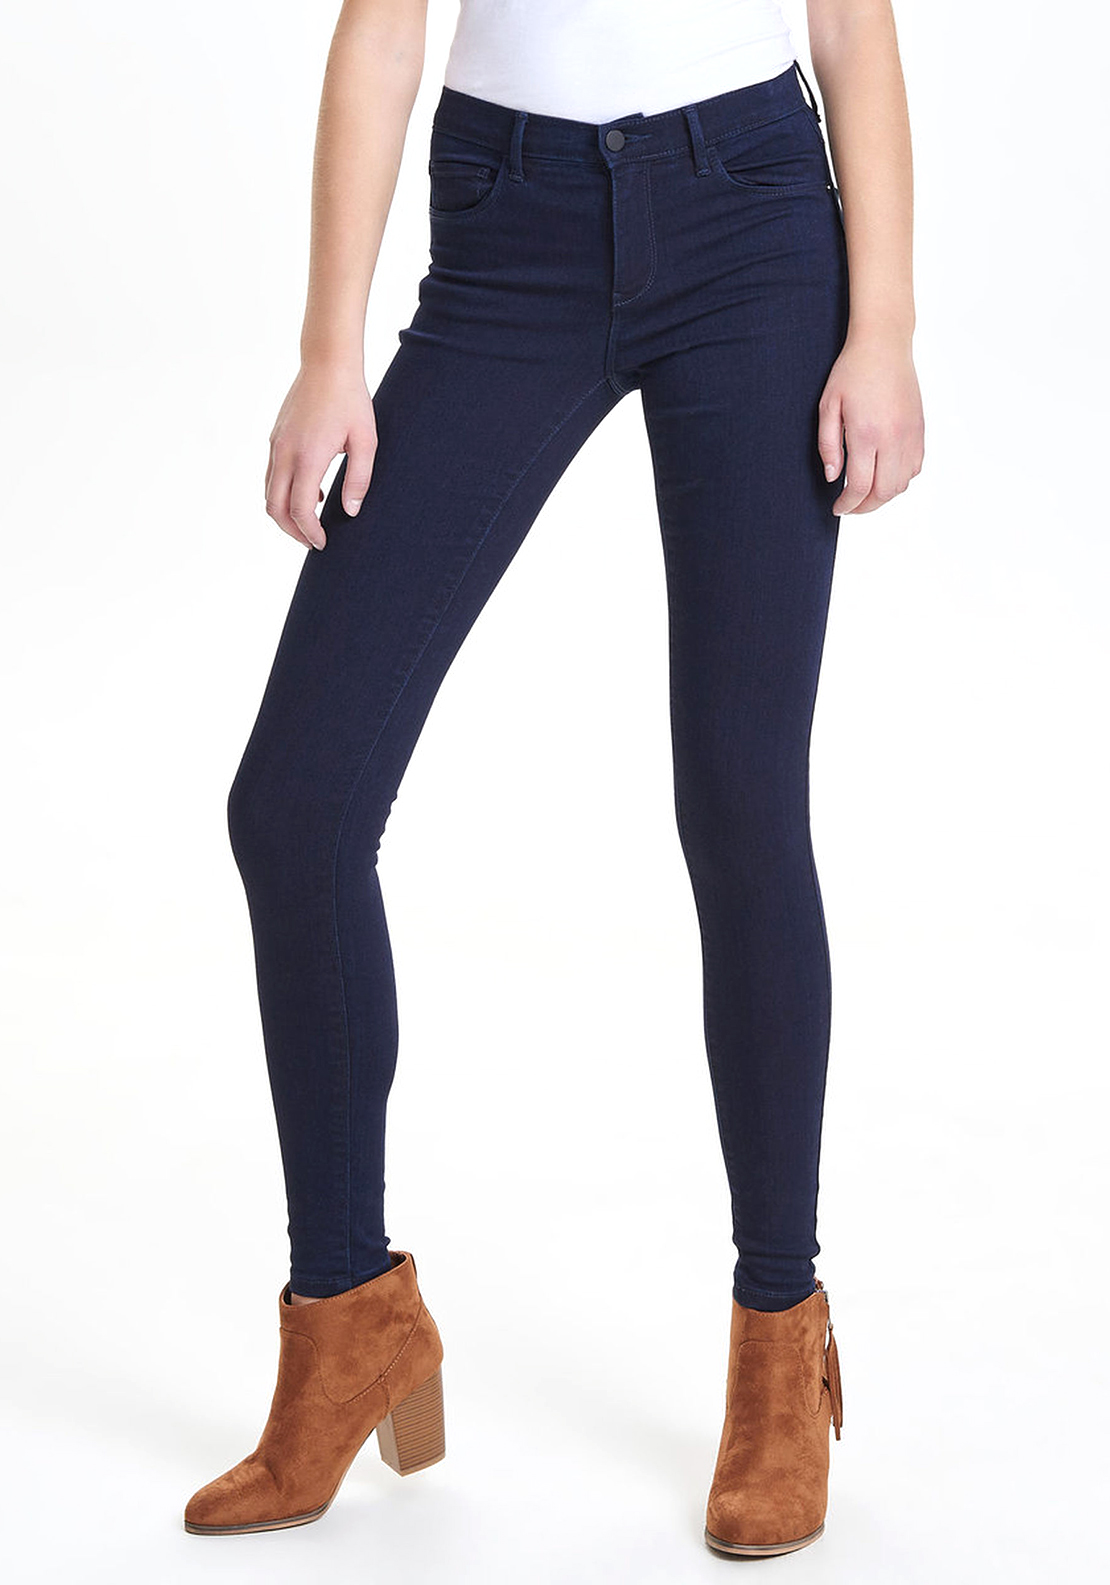 Only Rain Regular Fit Skinny Jeans, Navy